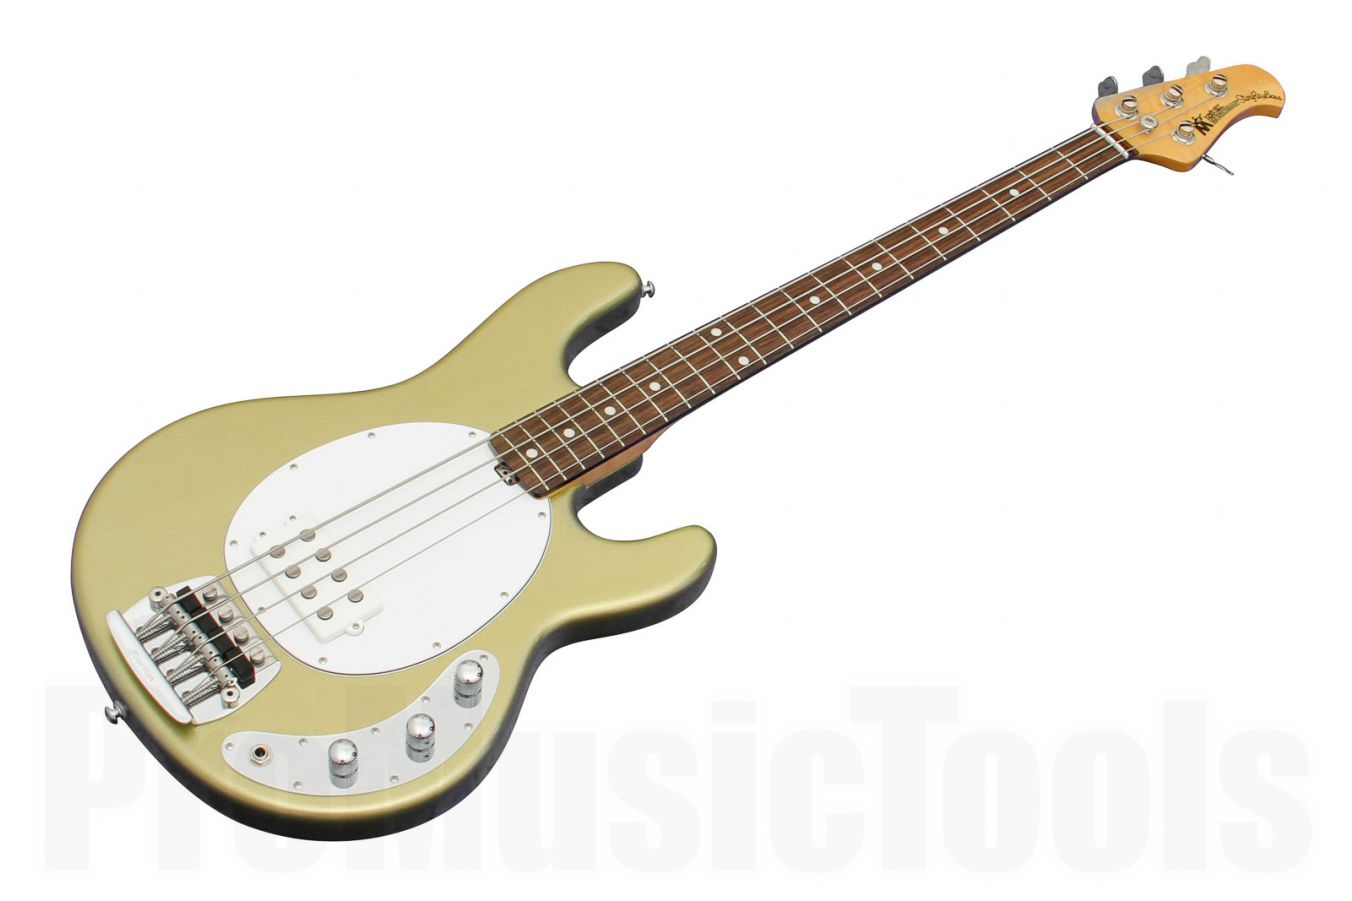 Music Man USA Classic Stingray 4 EG - Eldorado Gold RW Birdseye